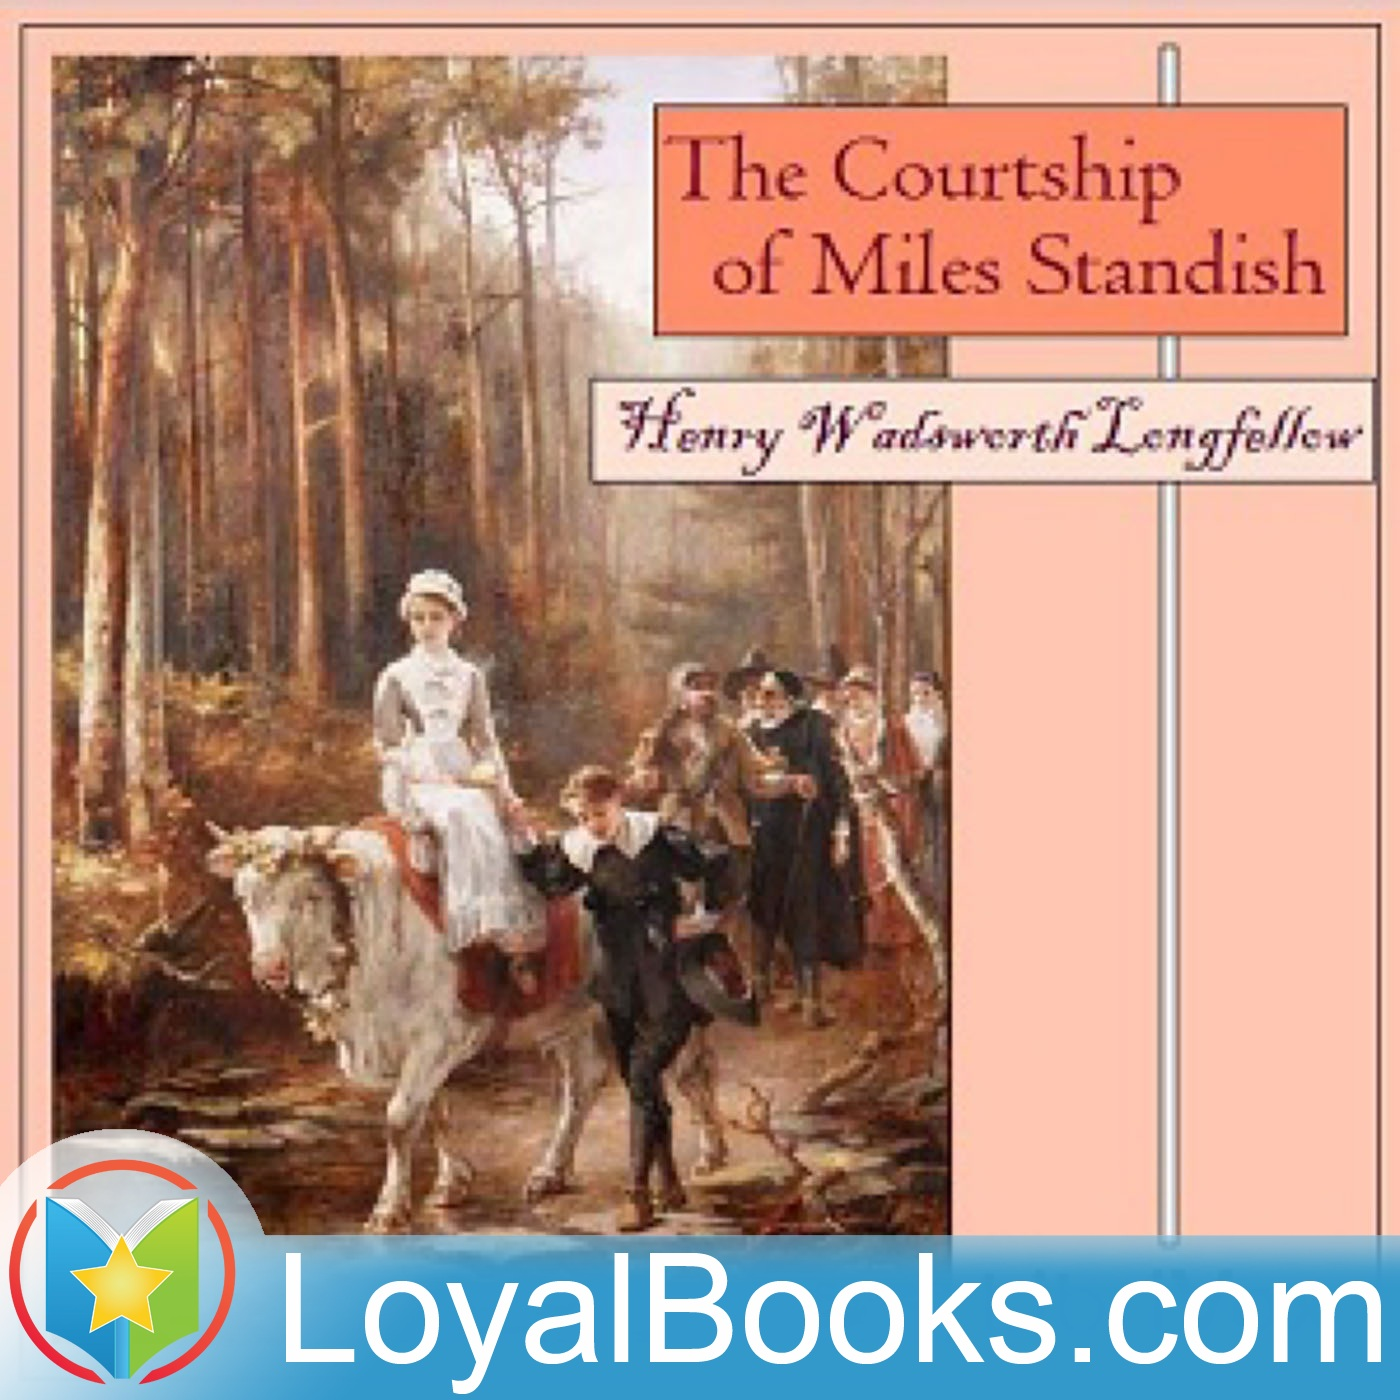 an introduction to the courtship of miles standish by henry wadsworth longfellow The courtship of miles standish by henry wadsworth longfellow the courtship of miles standish by henry longfellow's courtship of miles stando ish.